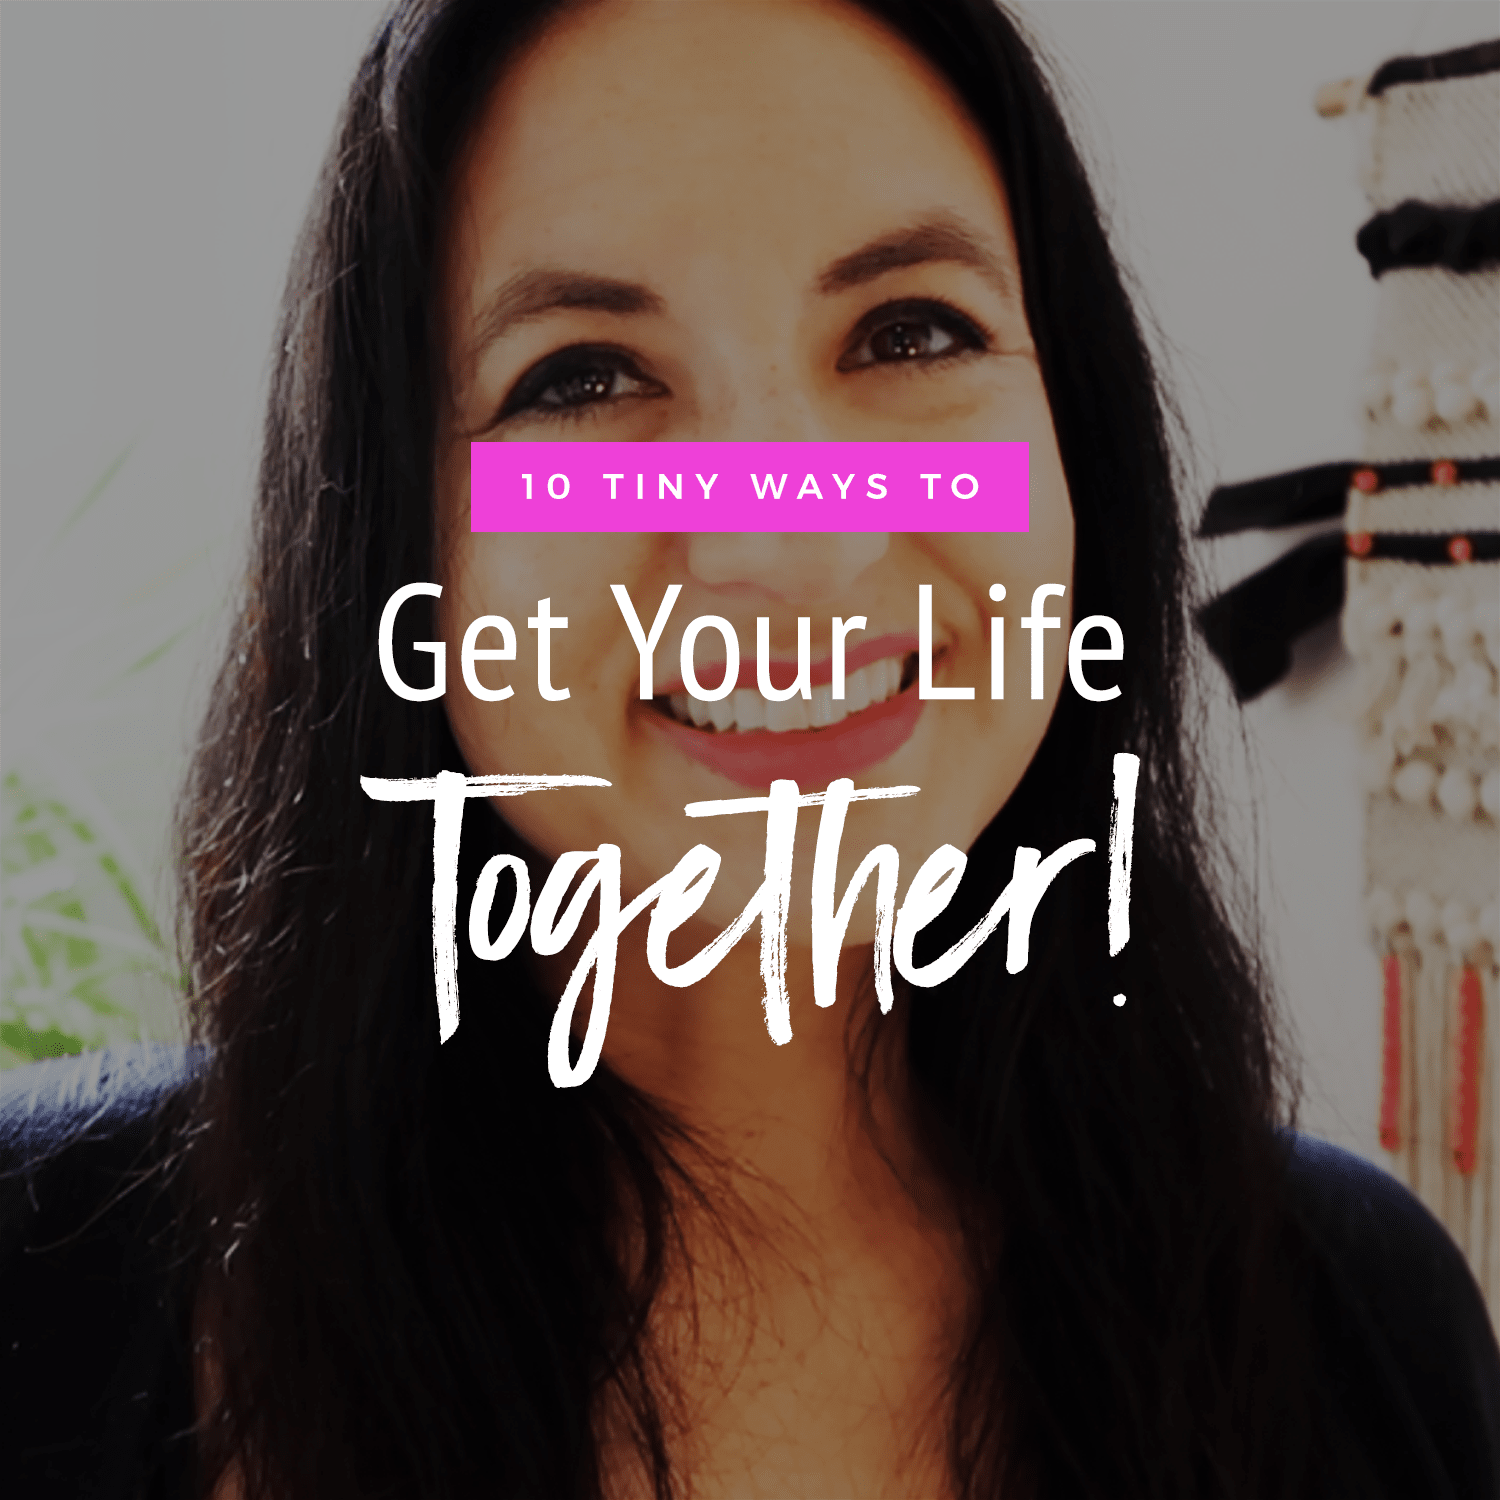 10 Tiny Ways To Get Your Life Together